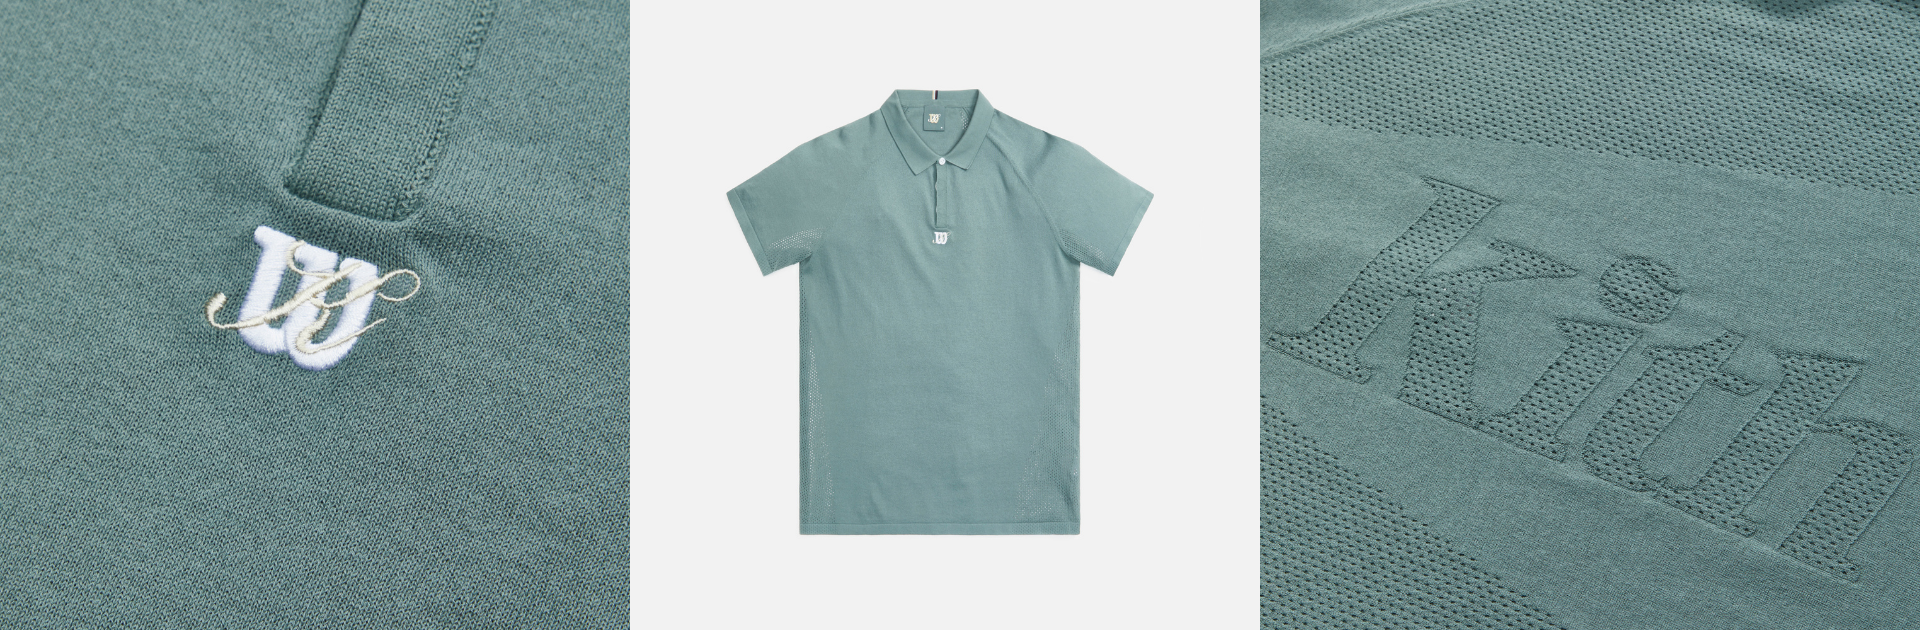 kith x wilson green polo with detail shots